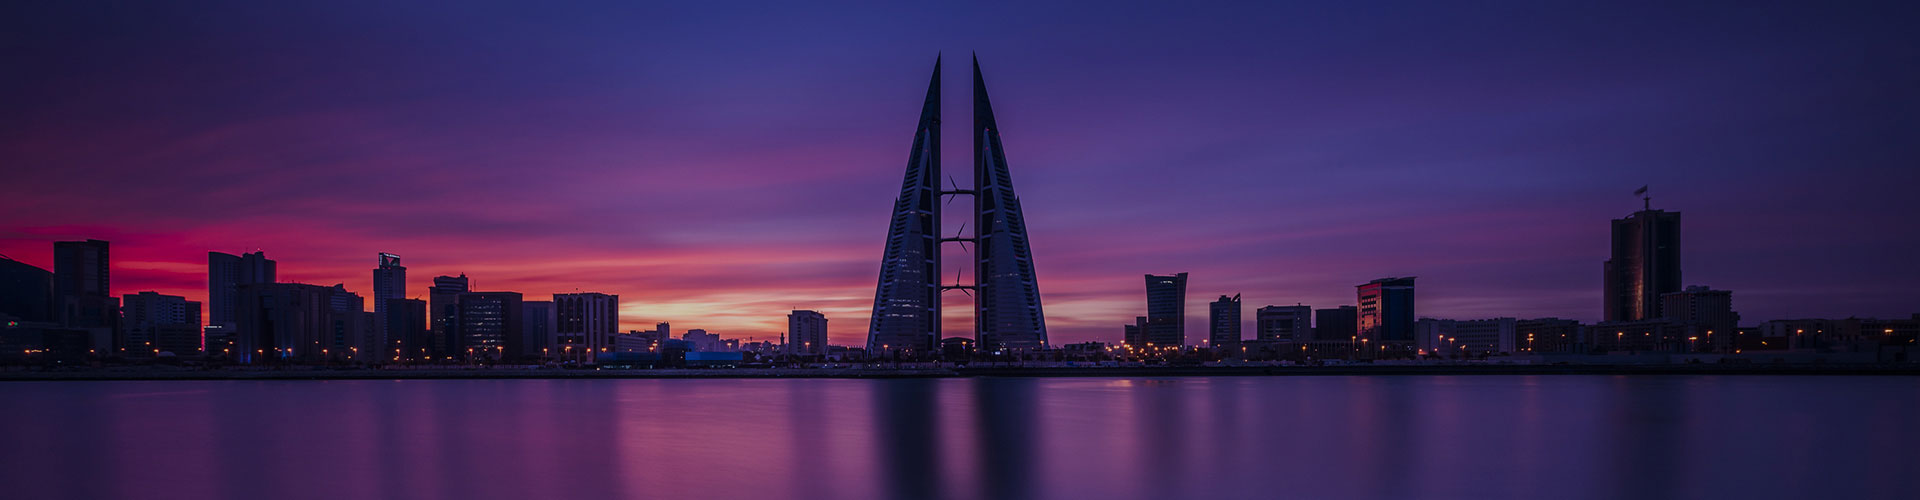 Landmark photograph of Bahrain